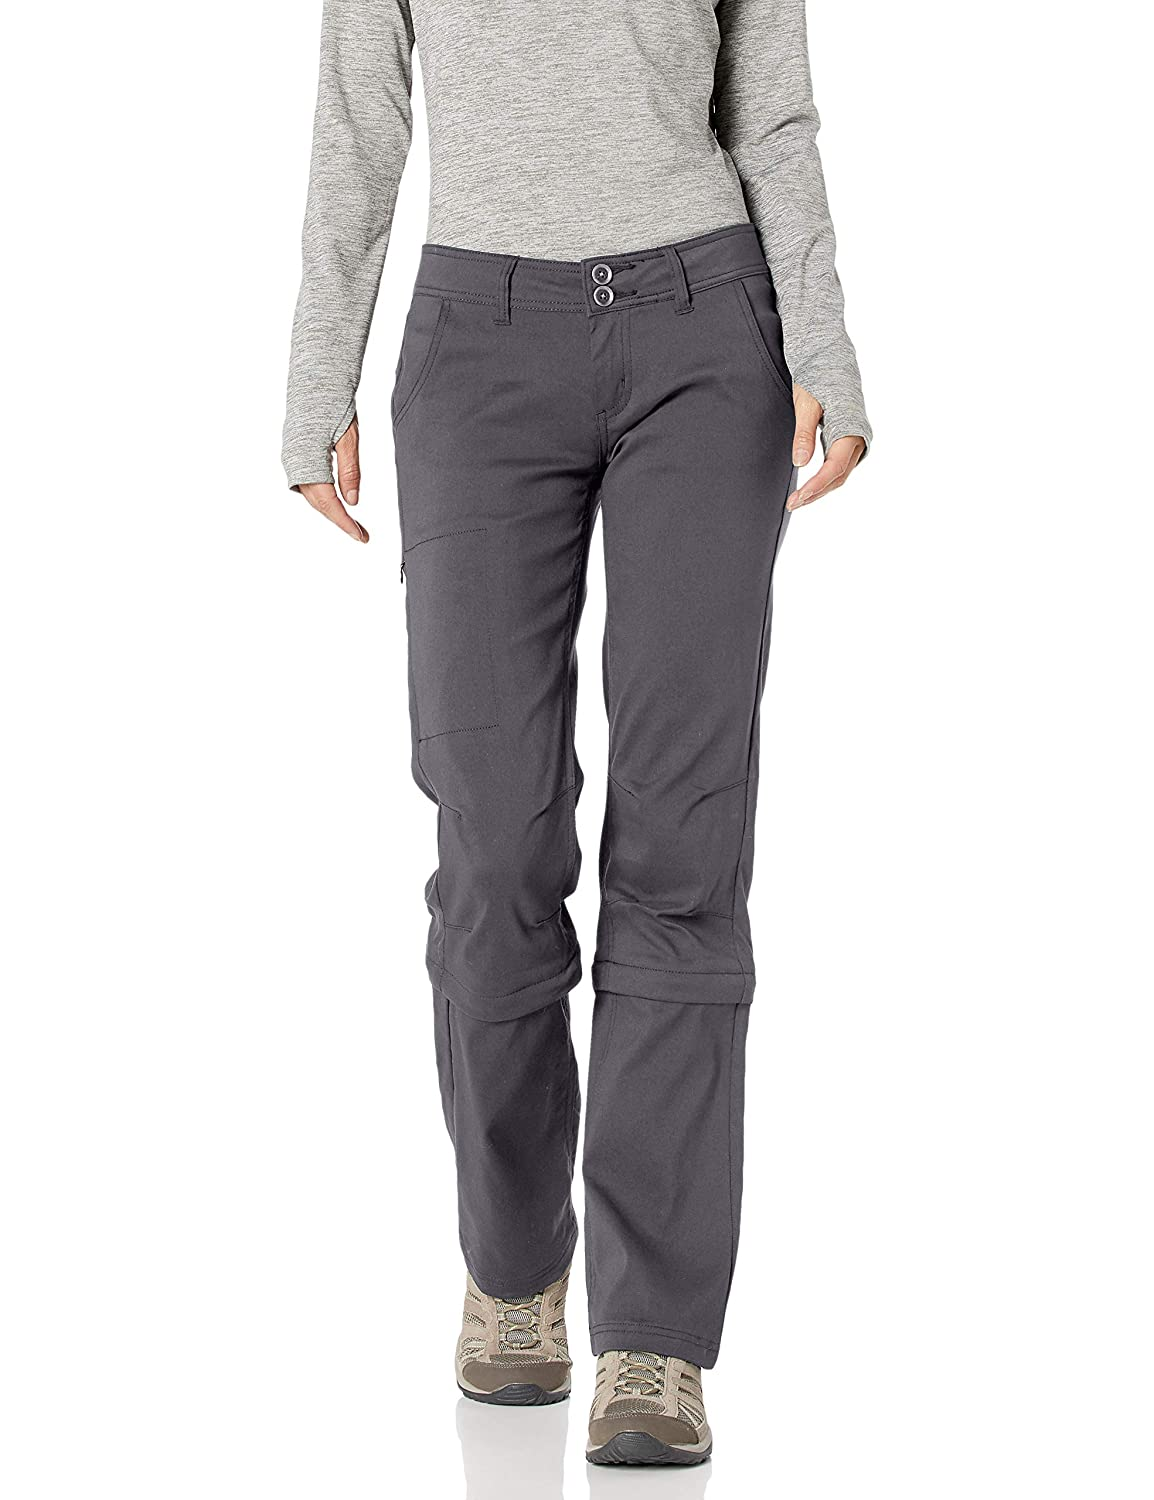 Womens Halle Convertible Pant prAna